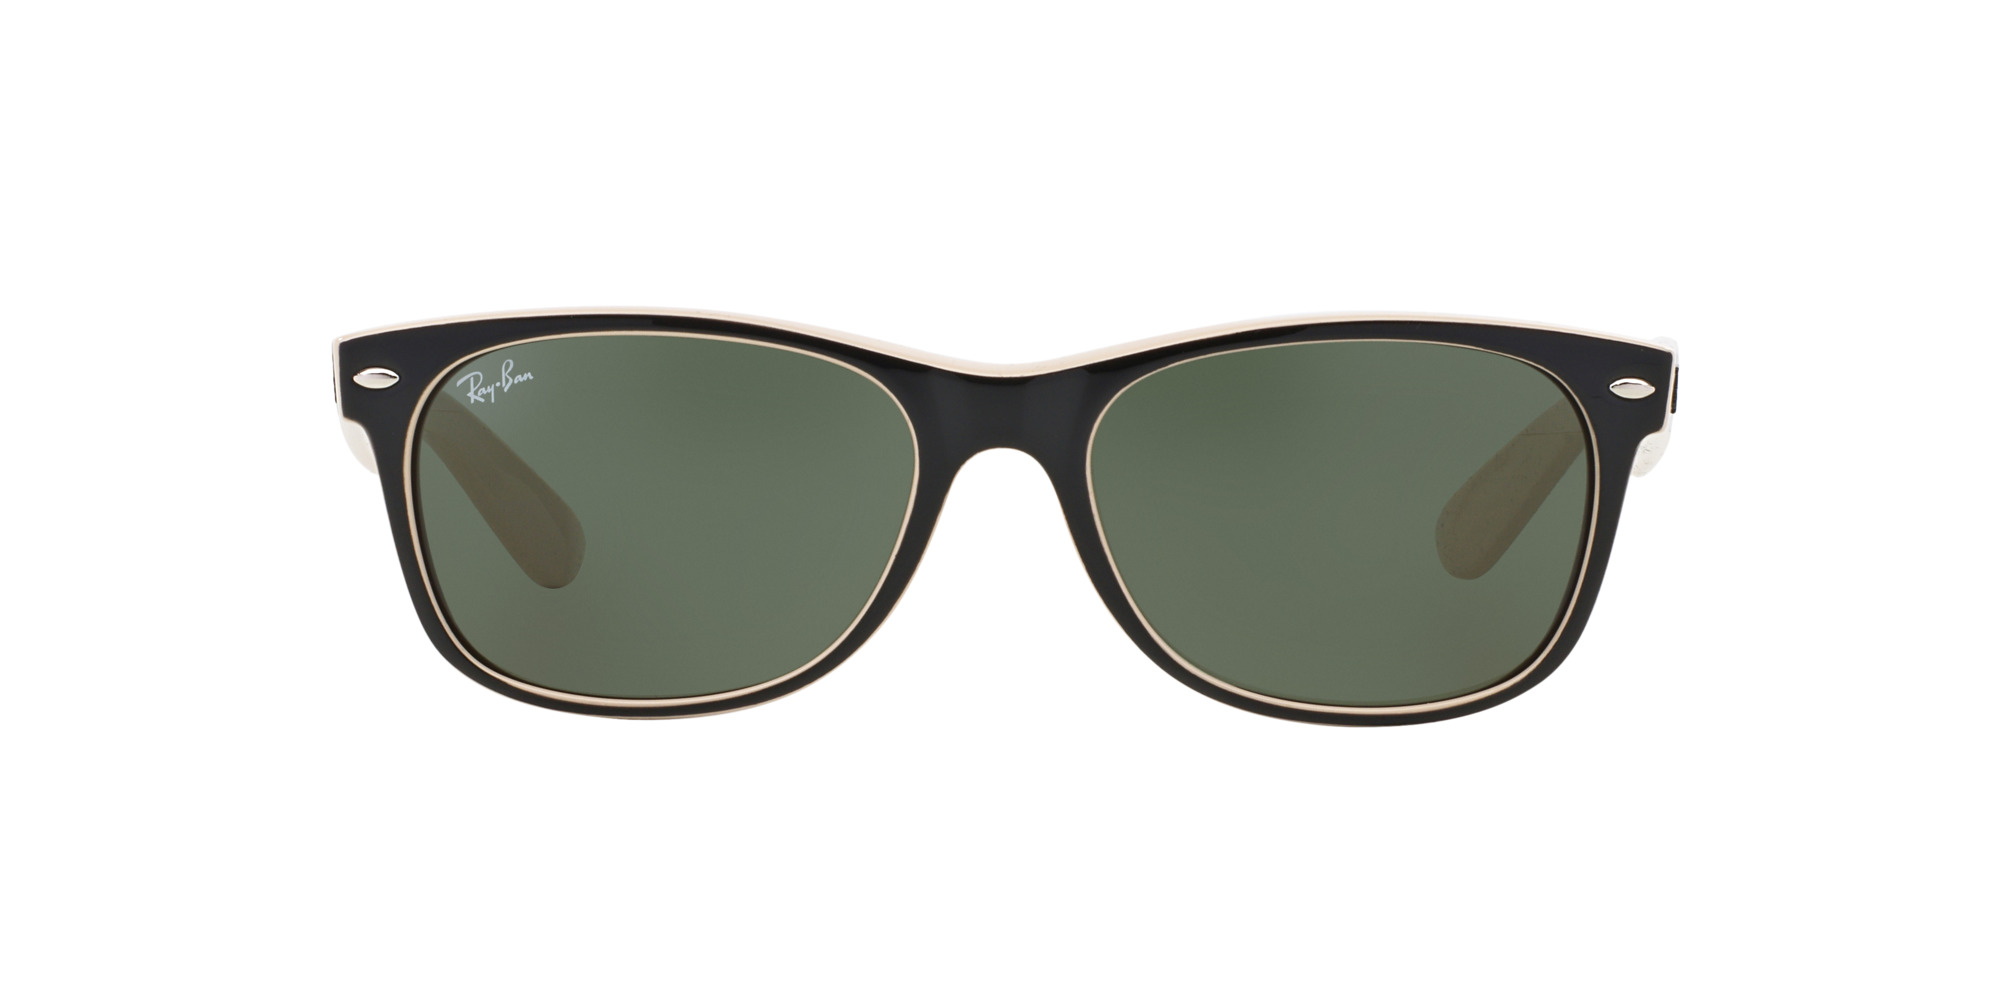 RAY-BAN NEW WAYFARER RB 2132 875 -360